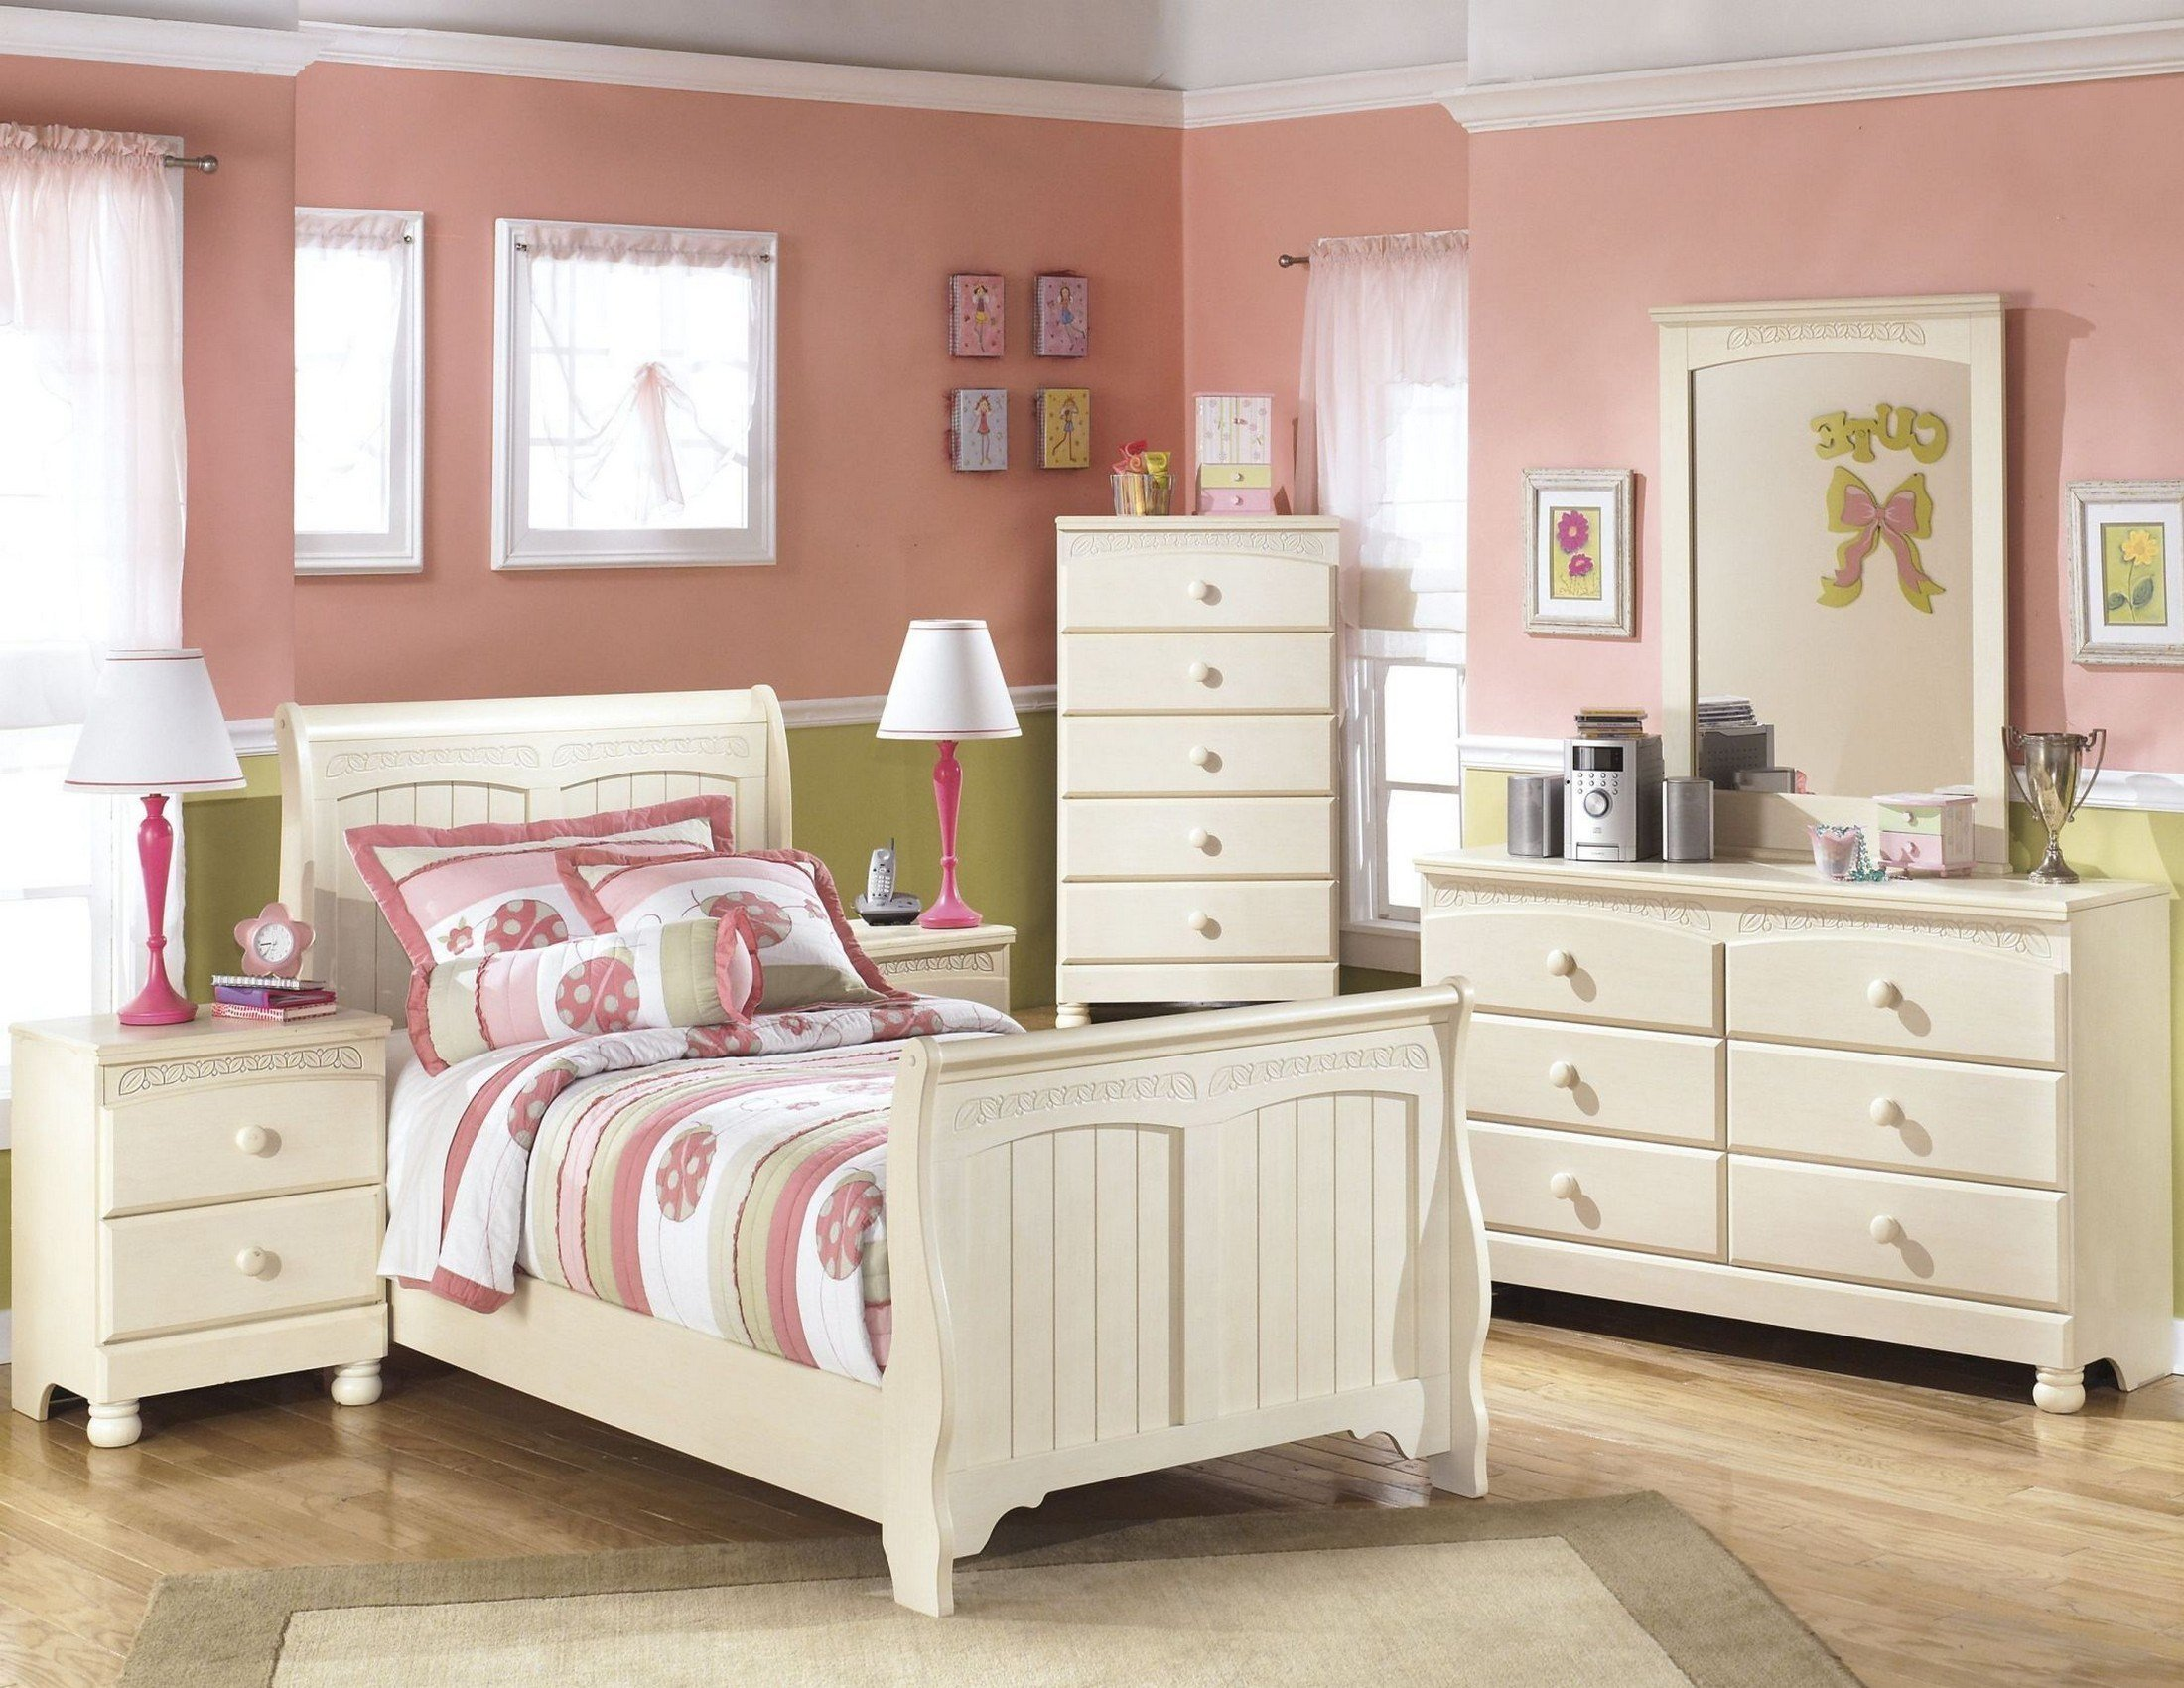 Best Cottage Retreat Youth Sleigh Bedroom Set From Ashley B213 62 63 82 Coleman Furniture With Pictures